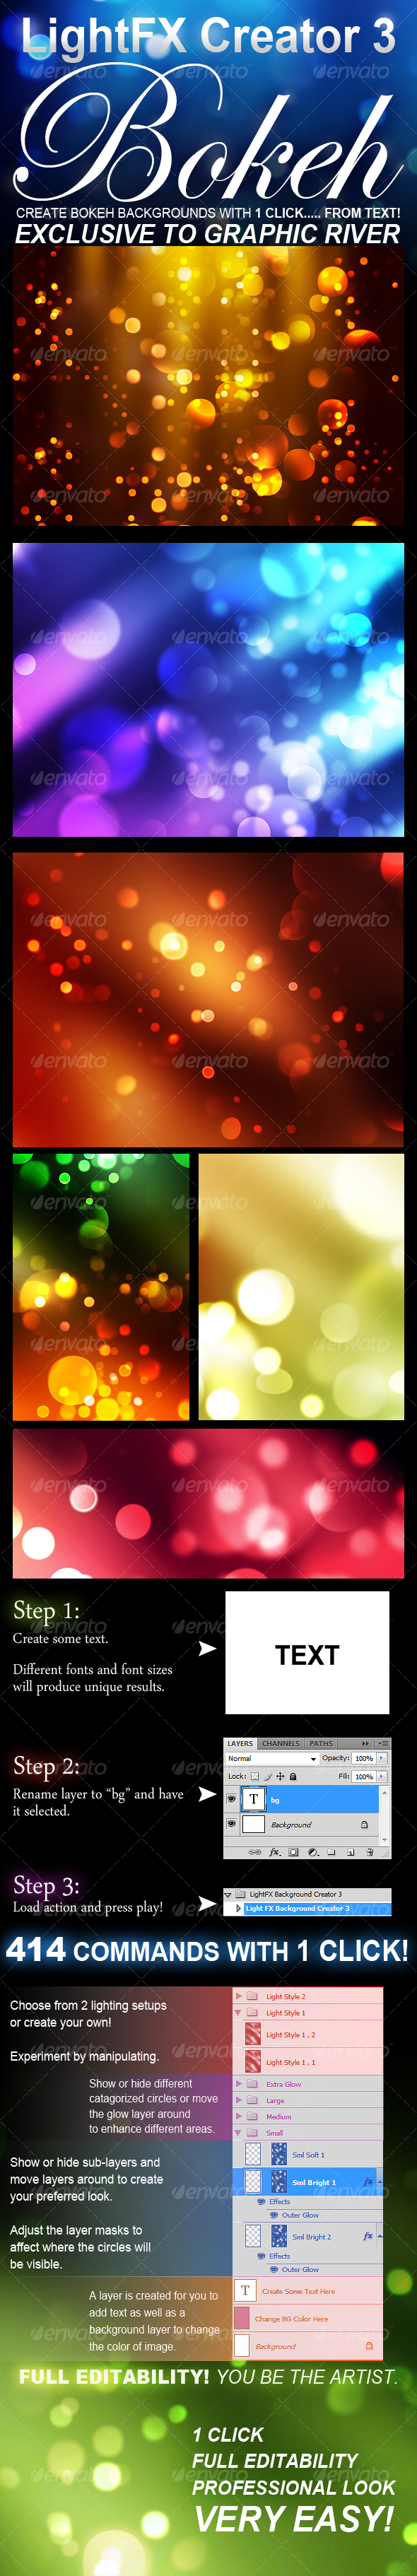 Graphic River LightFX Background Creator 3 Bokeh  Add-ons -  Photoshop  Actions  Utilities 94911